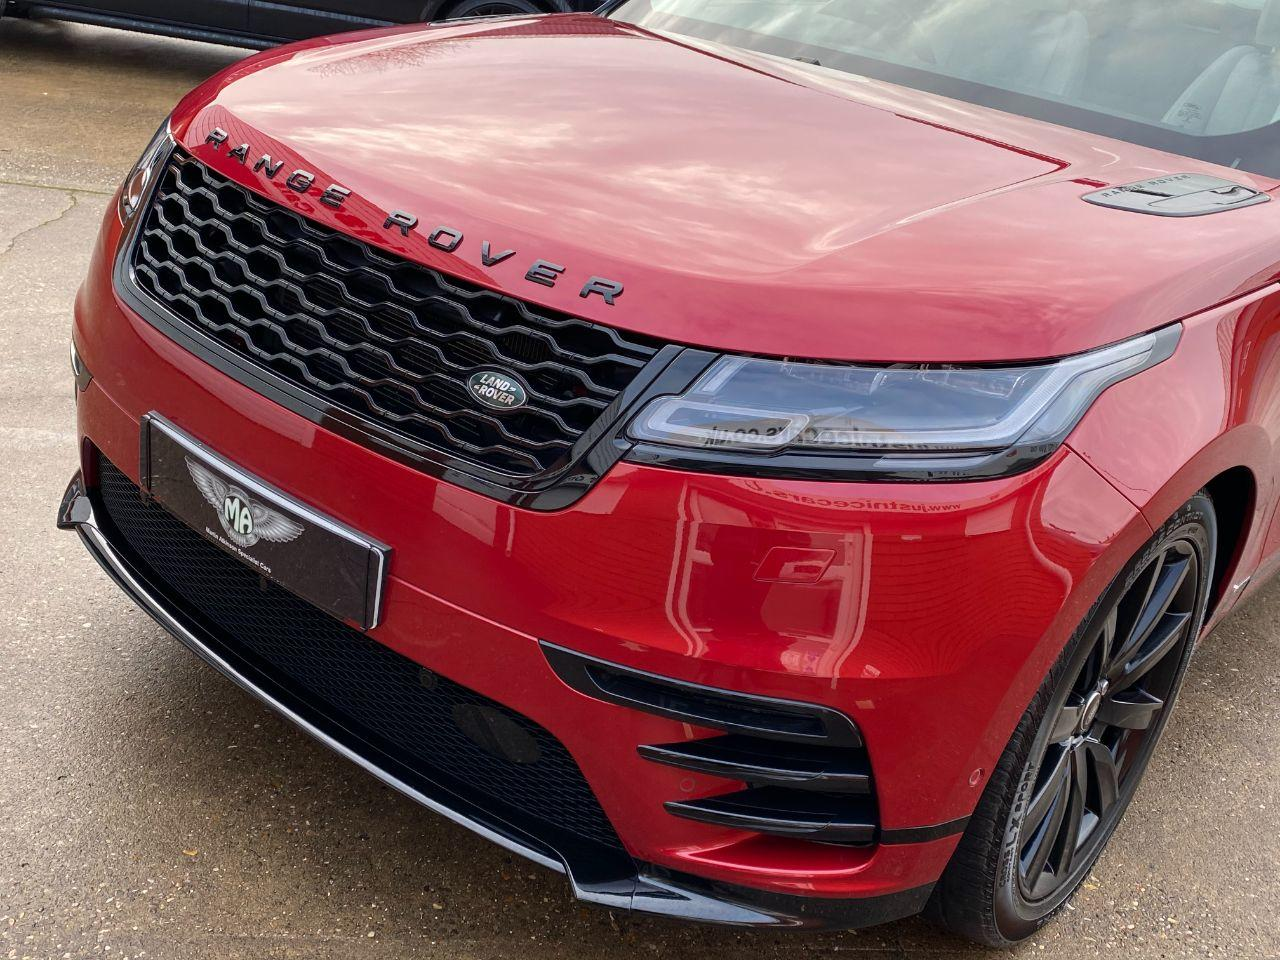 Land Rover Range Rover Velar 3.0 D300 R-Dynamic HSE 5dr Auto Estate Diesel Firenze Red/italian Racing Red Metallic